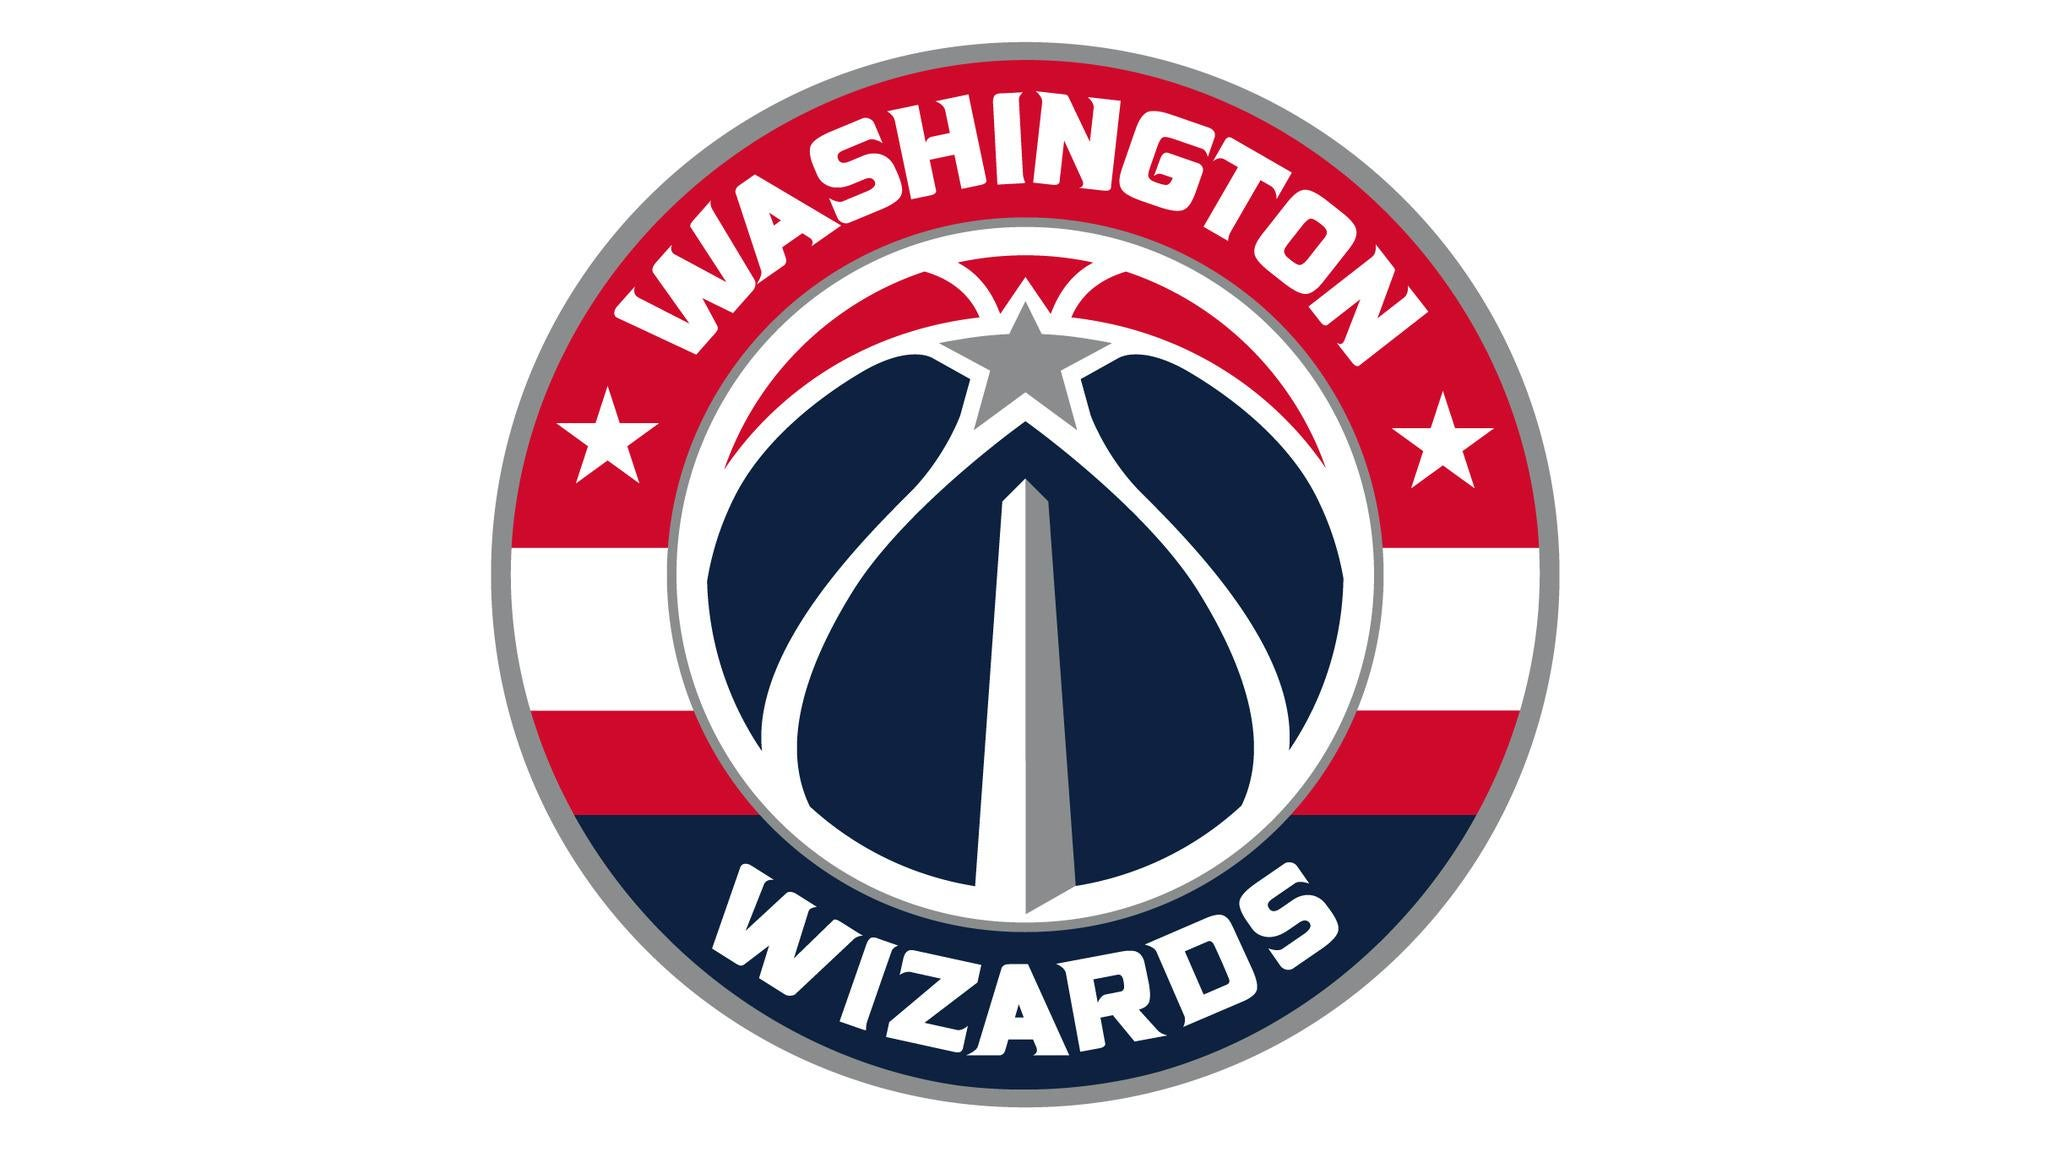 Washington Wizards vs. Memphis Grizzlies